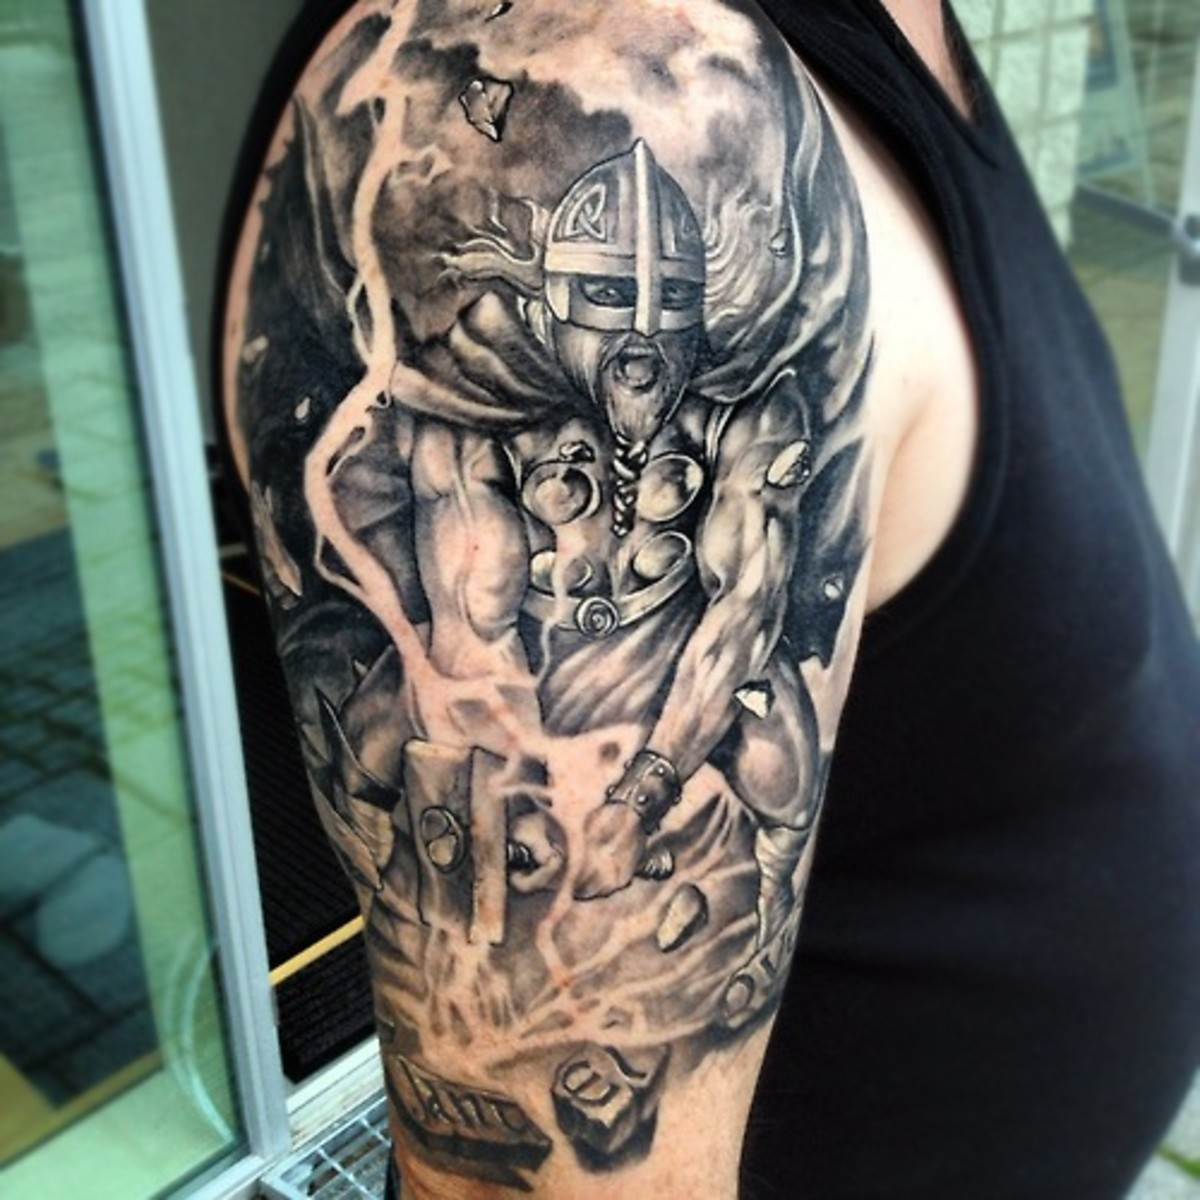 Stunning tattoo of Viking God of Lightning Thor & his mighty hammer at work.